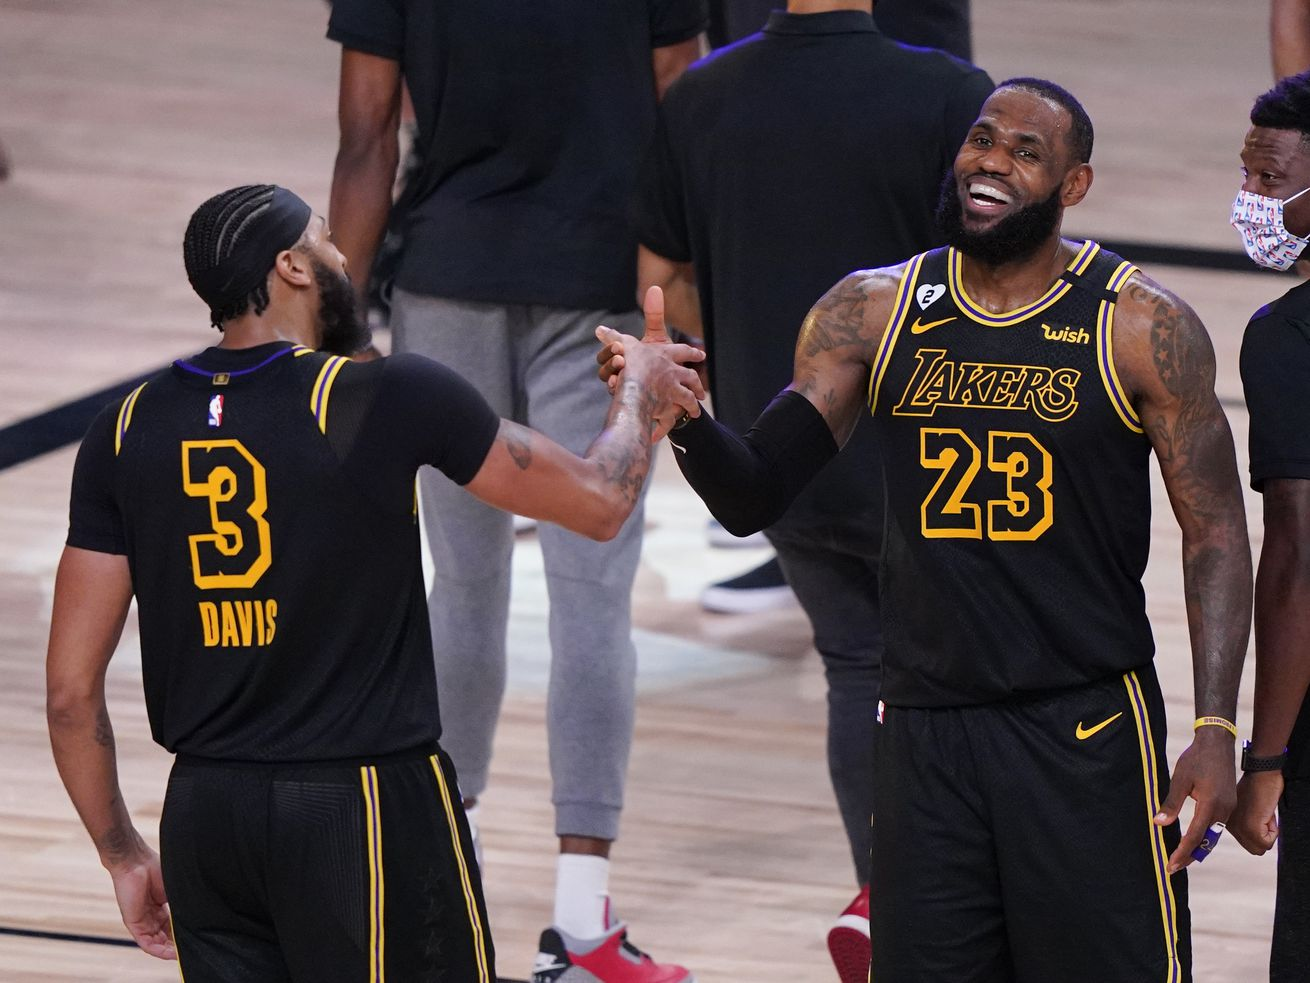 In this Sunday, Sept. 20, 2020, file photo, Los Angeles Lakers' LeBron James (23) celebrates with teammate Anthony Davis (3) after an NBA conference final playoff basketball game against the Denver Nuggets in Lake Buena Vista, Fla. The Lakers won 105-103.